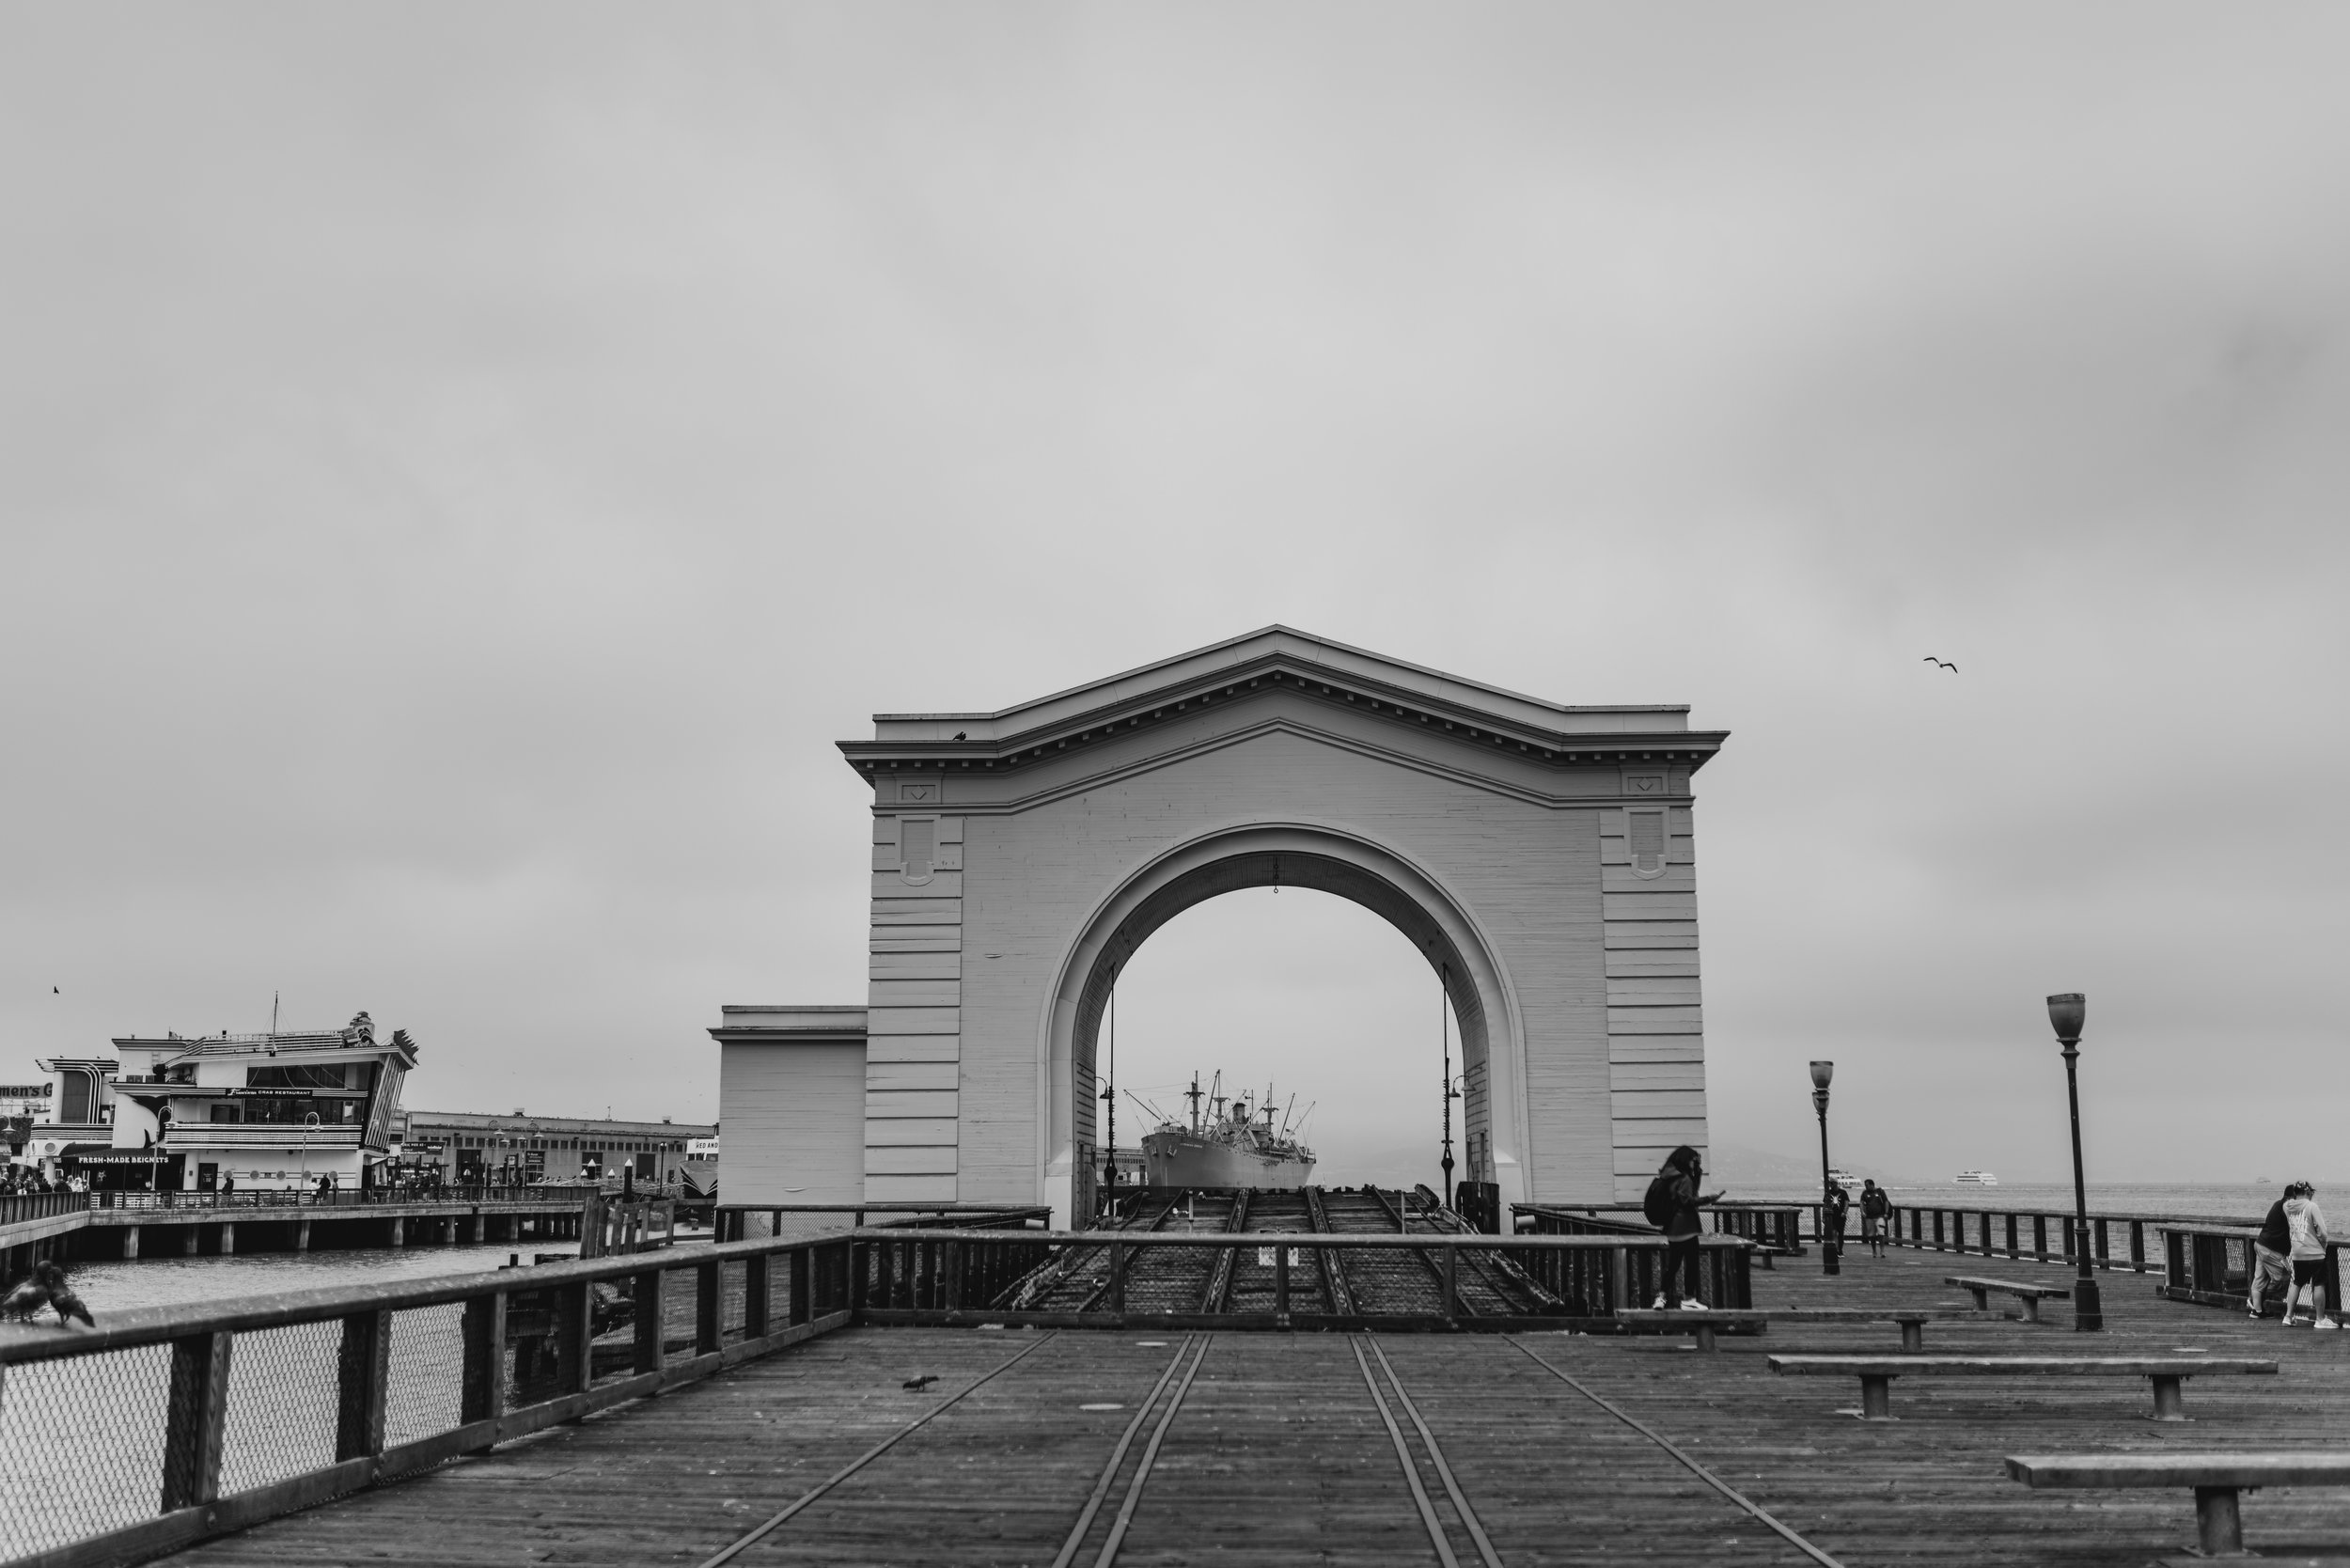 USA 2018 - San Francisco-58.jpg